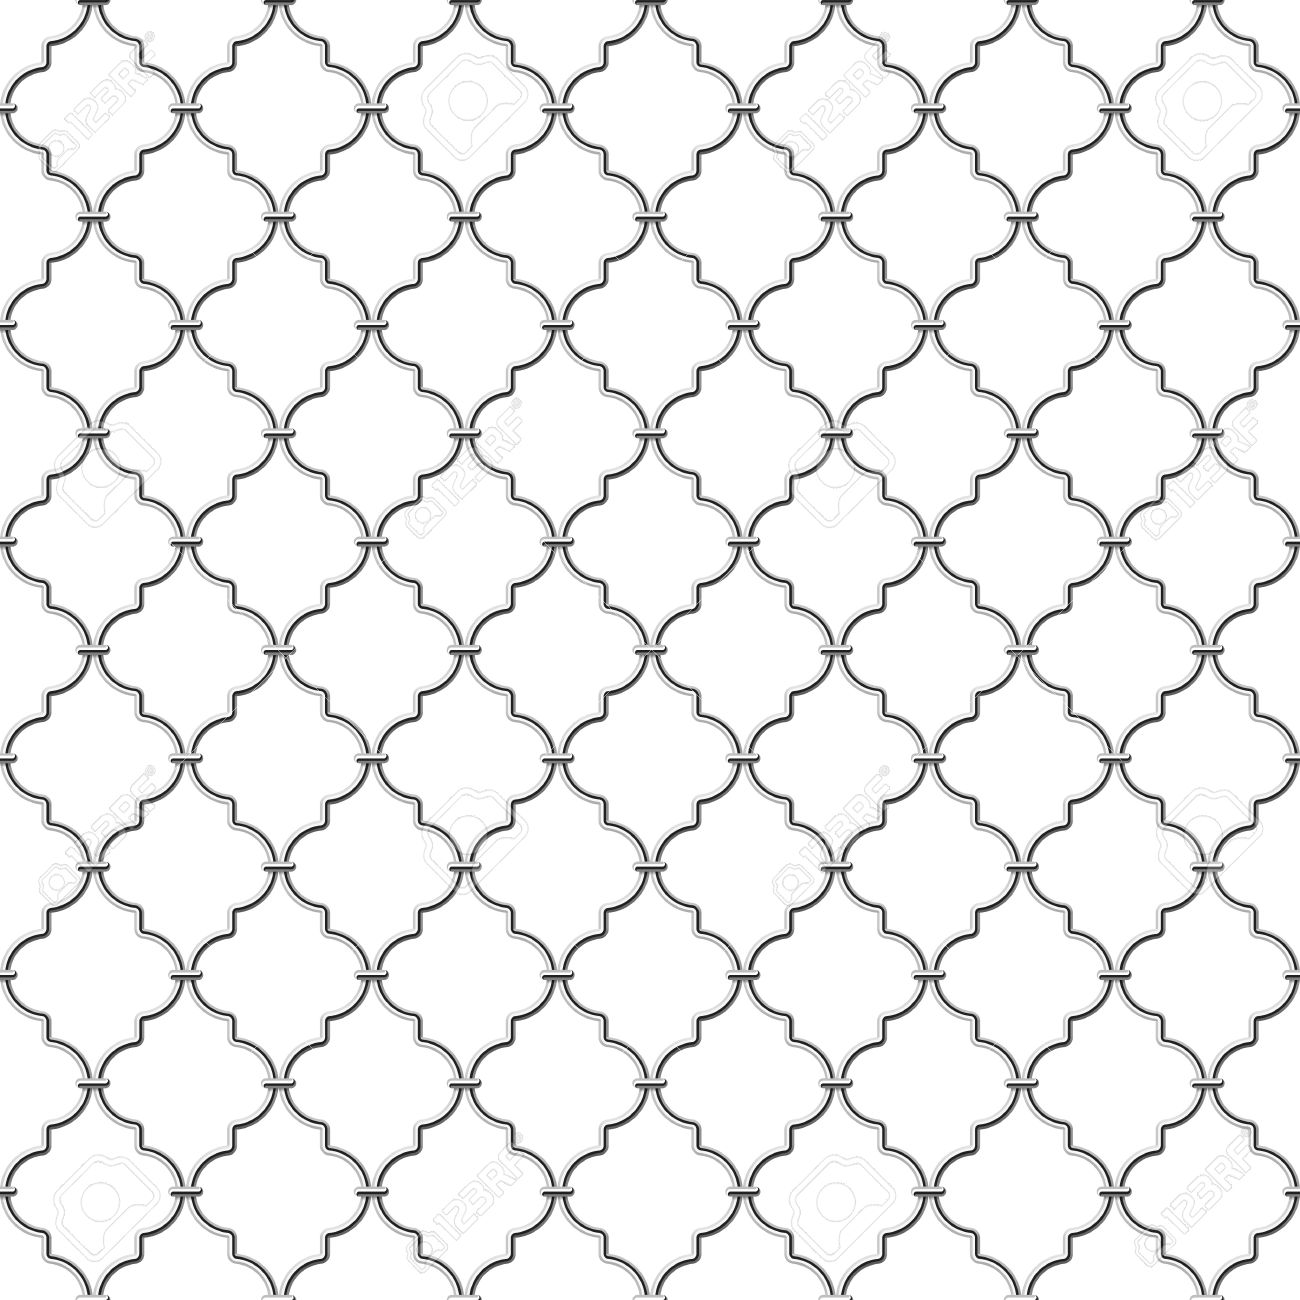 Seamless Metal Lattice Royalty Free Cliparts, Vectors, And Stock.